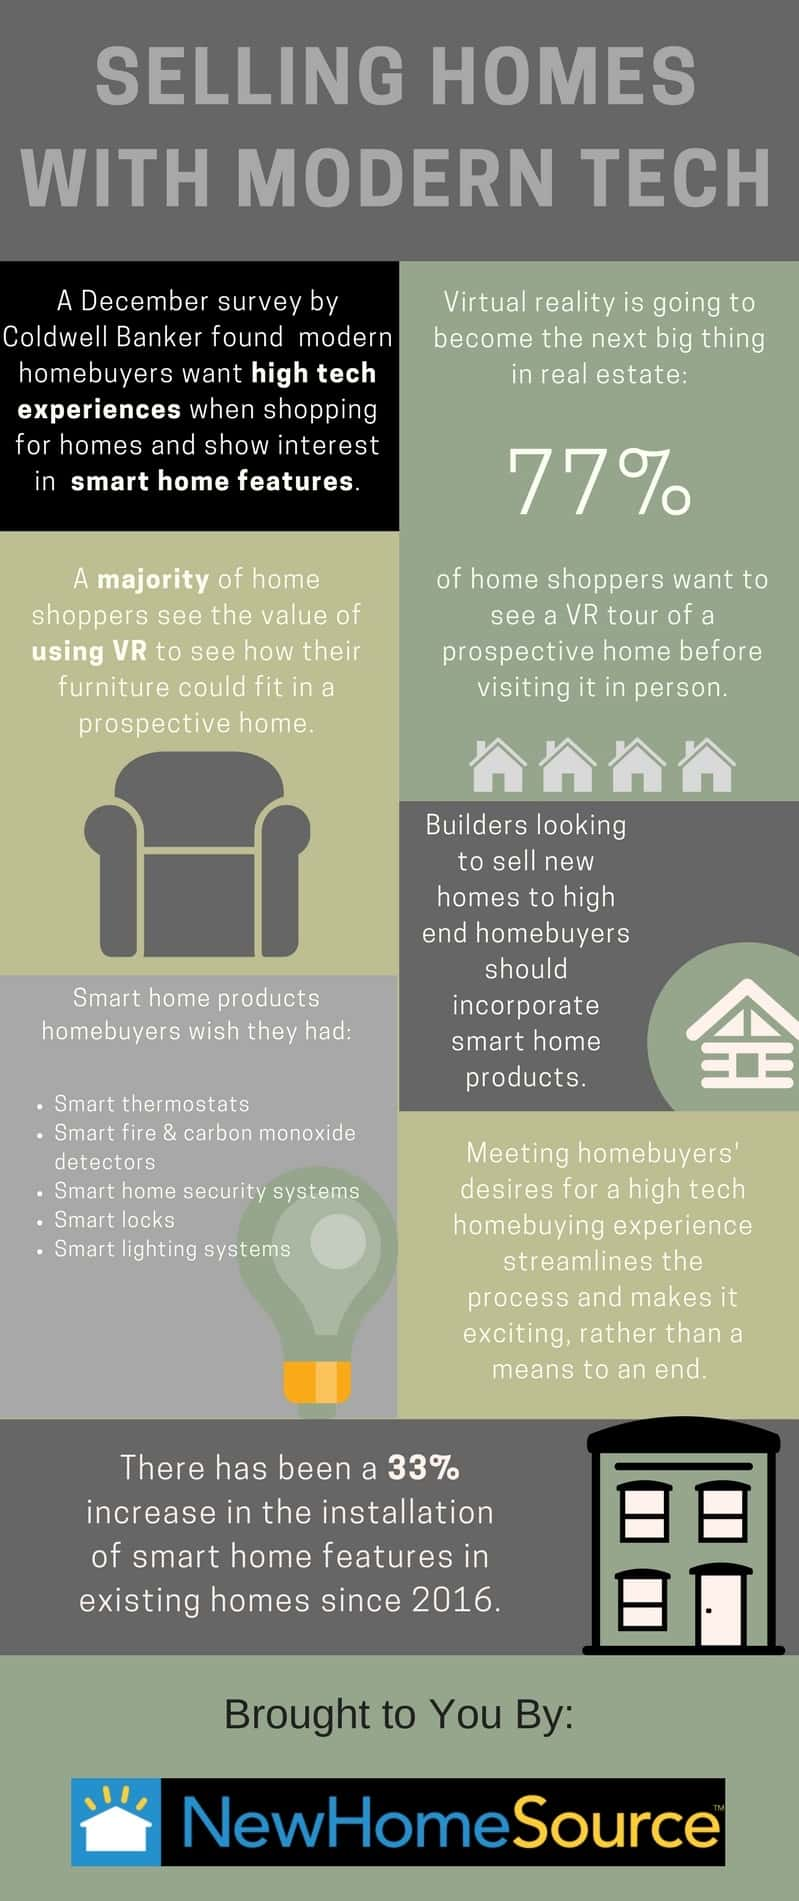 Infographic about Coldwell Banker survey found that American homebuyers embrace technology in the home and increasingly expect smart home technology and VR experiences during the home shopping process.